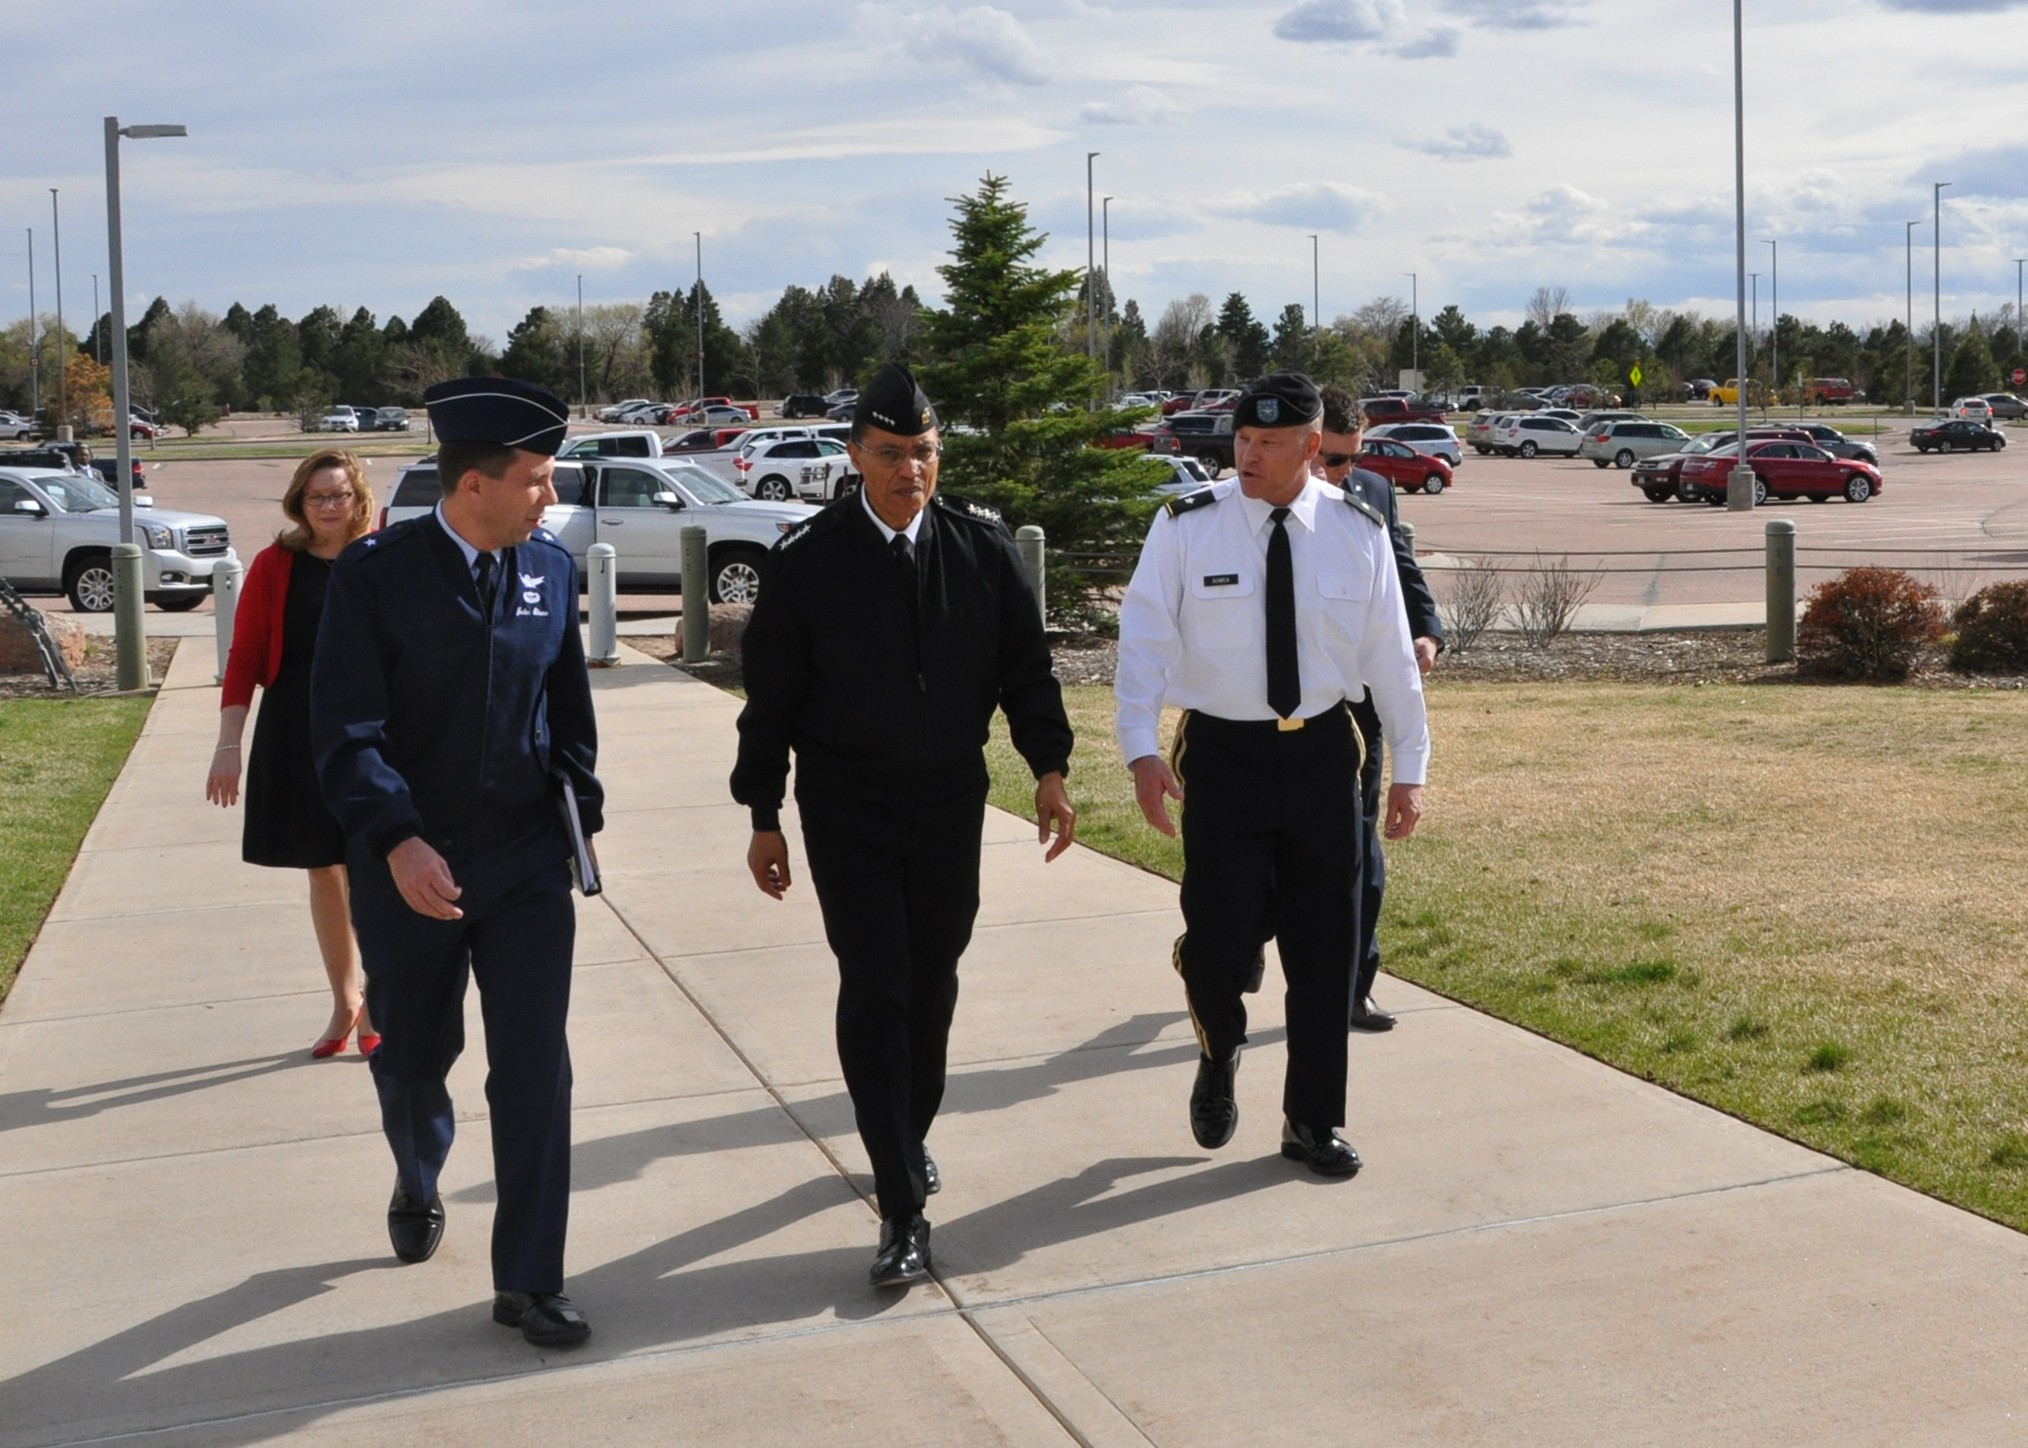 USSTRATCOM commander tours SMDC facilities | Article | The